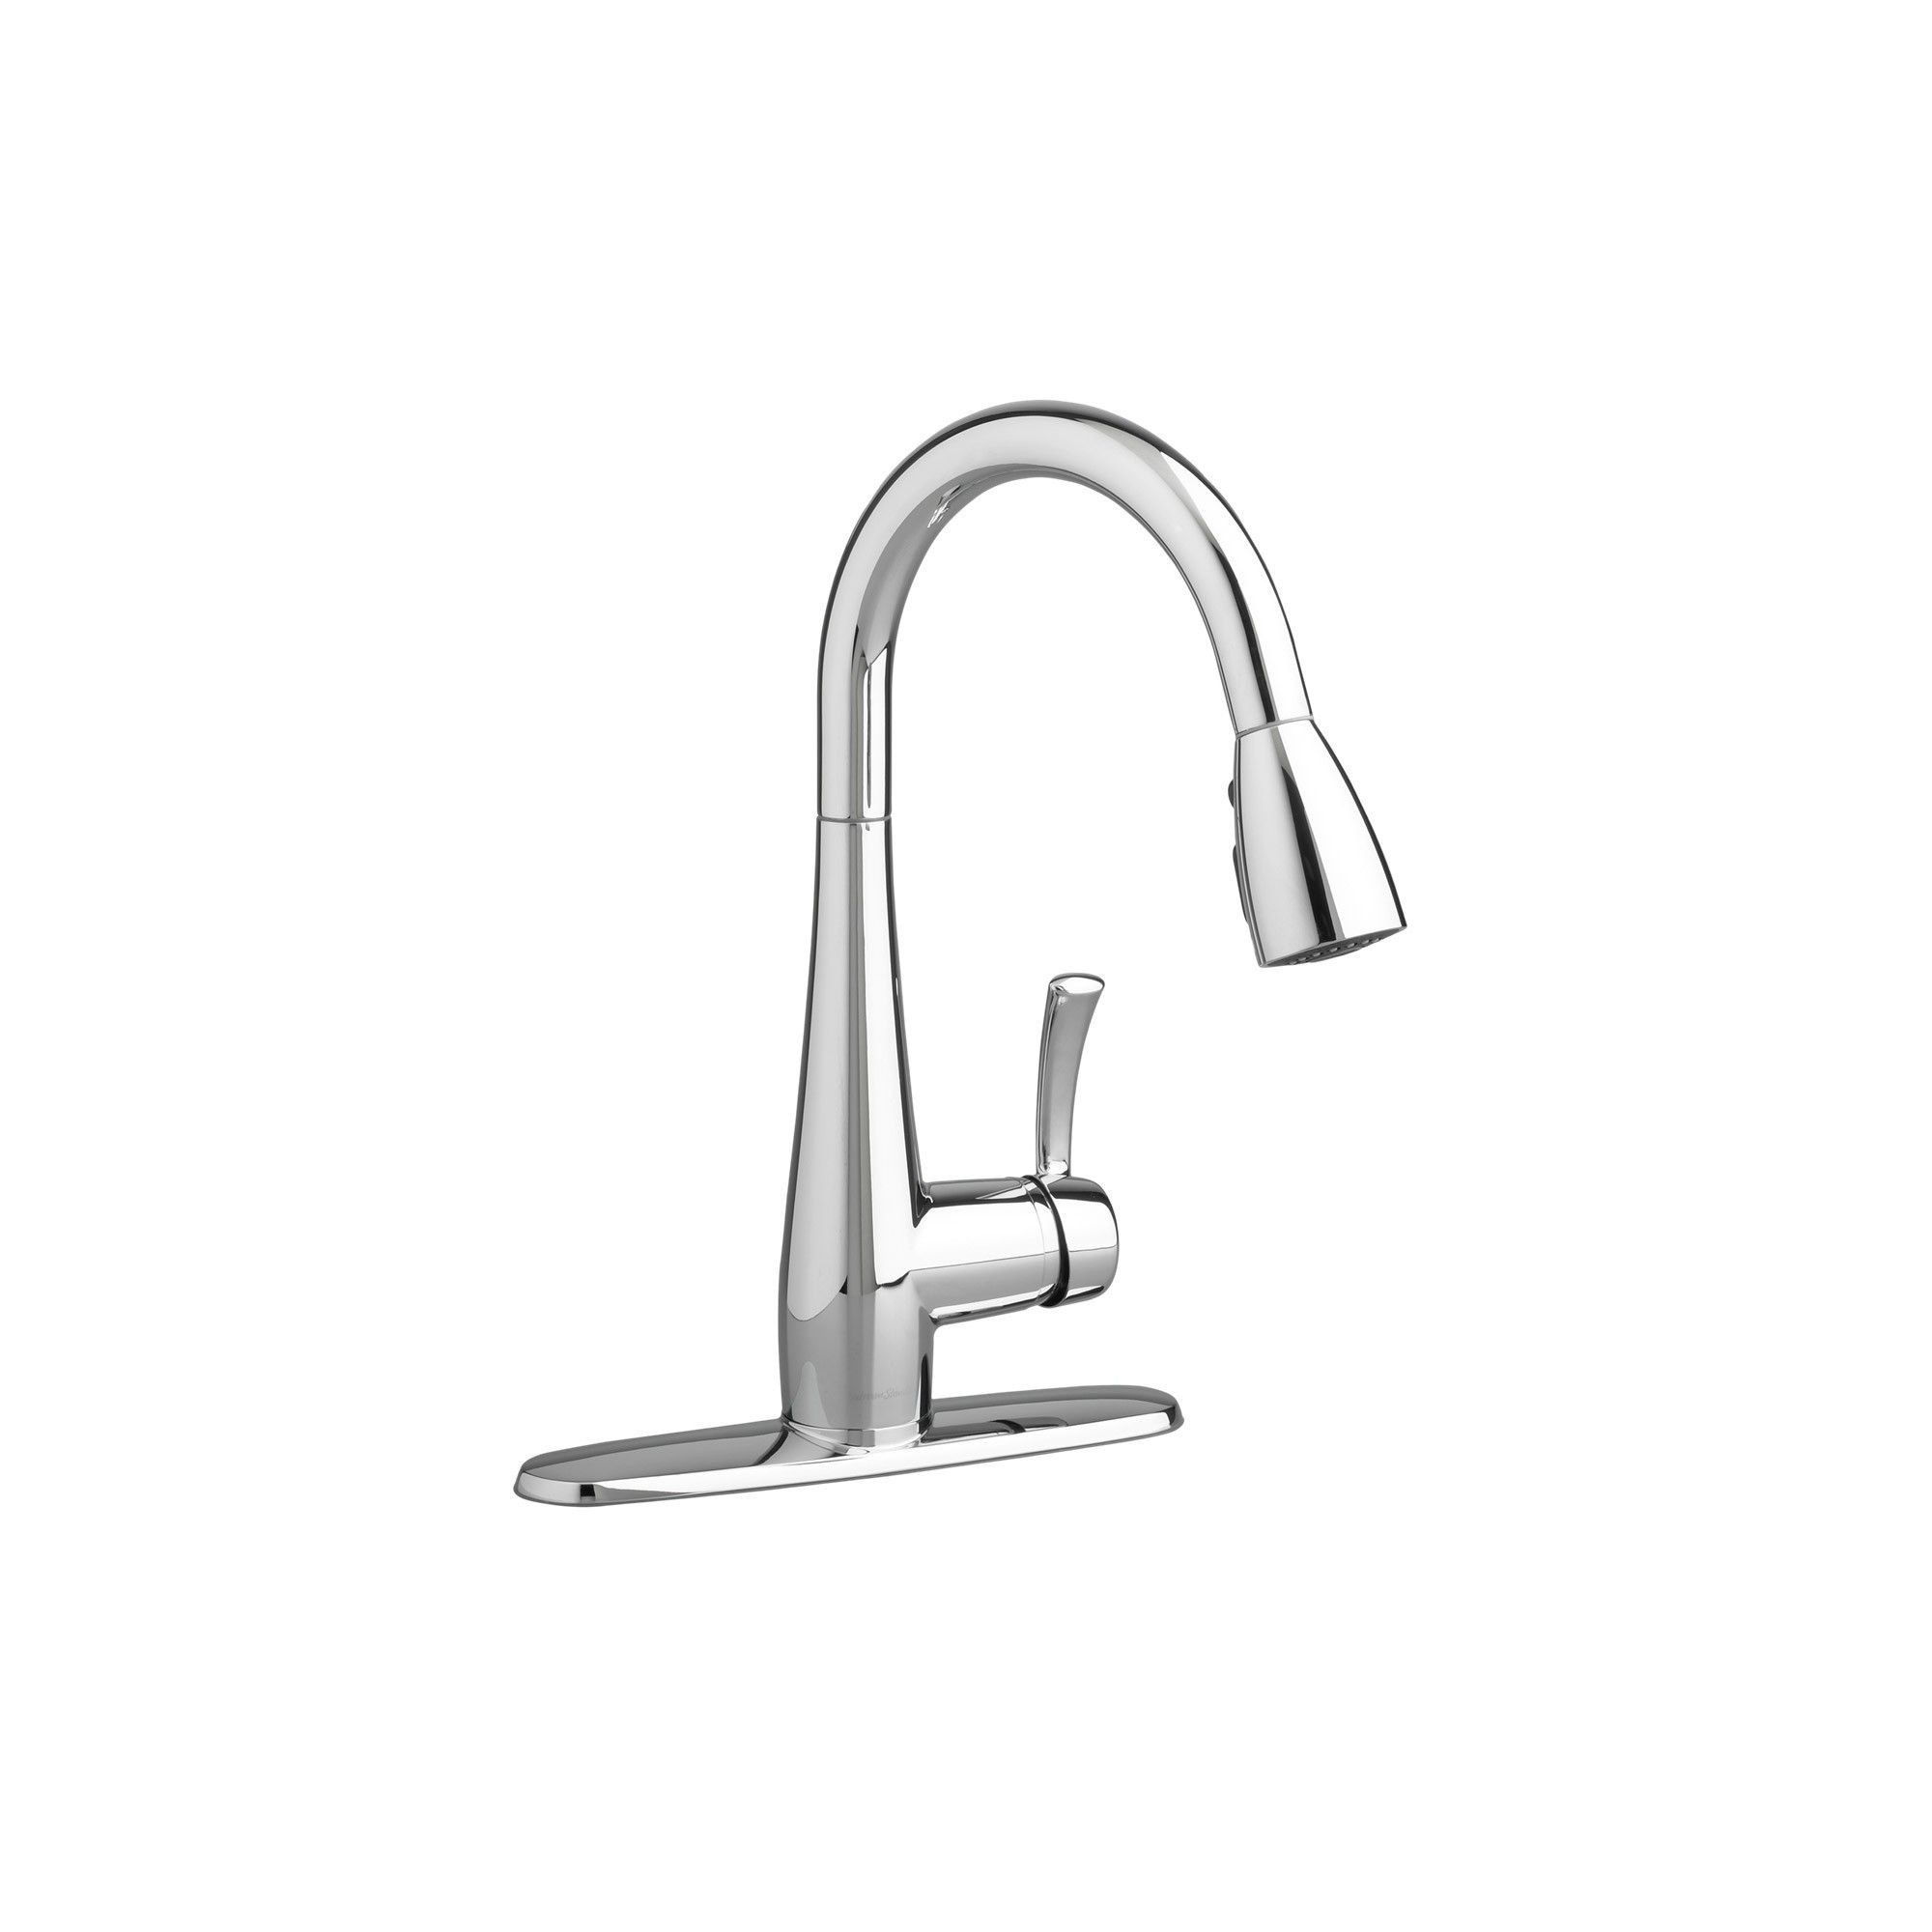 American Standard 4433 300f15 Quince Pull Down Kitchen Faucet Polished Chrome Faucet American Standard Kitchen Faucet